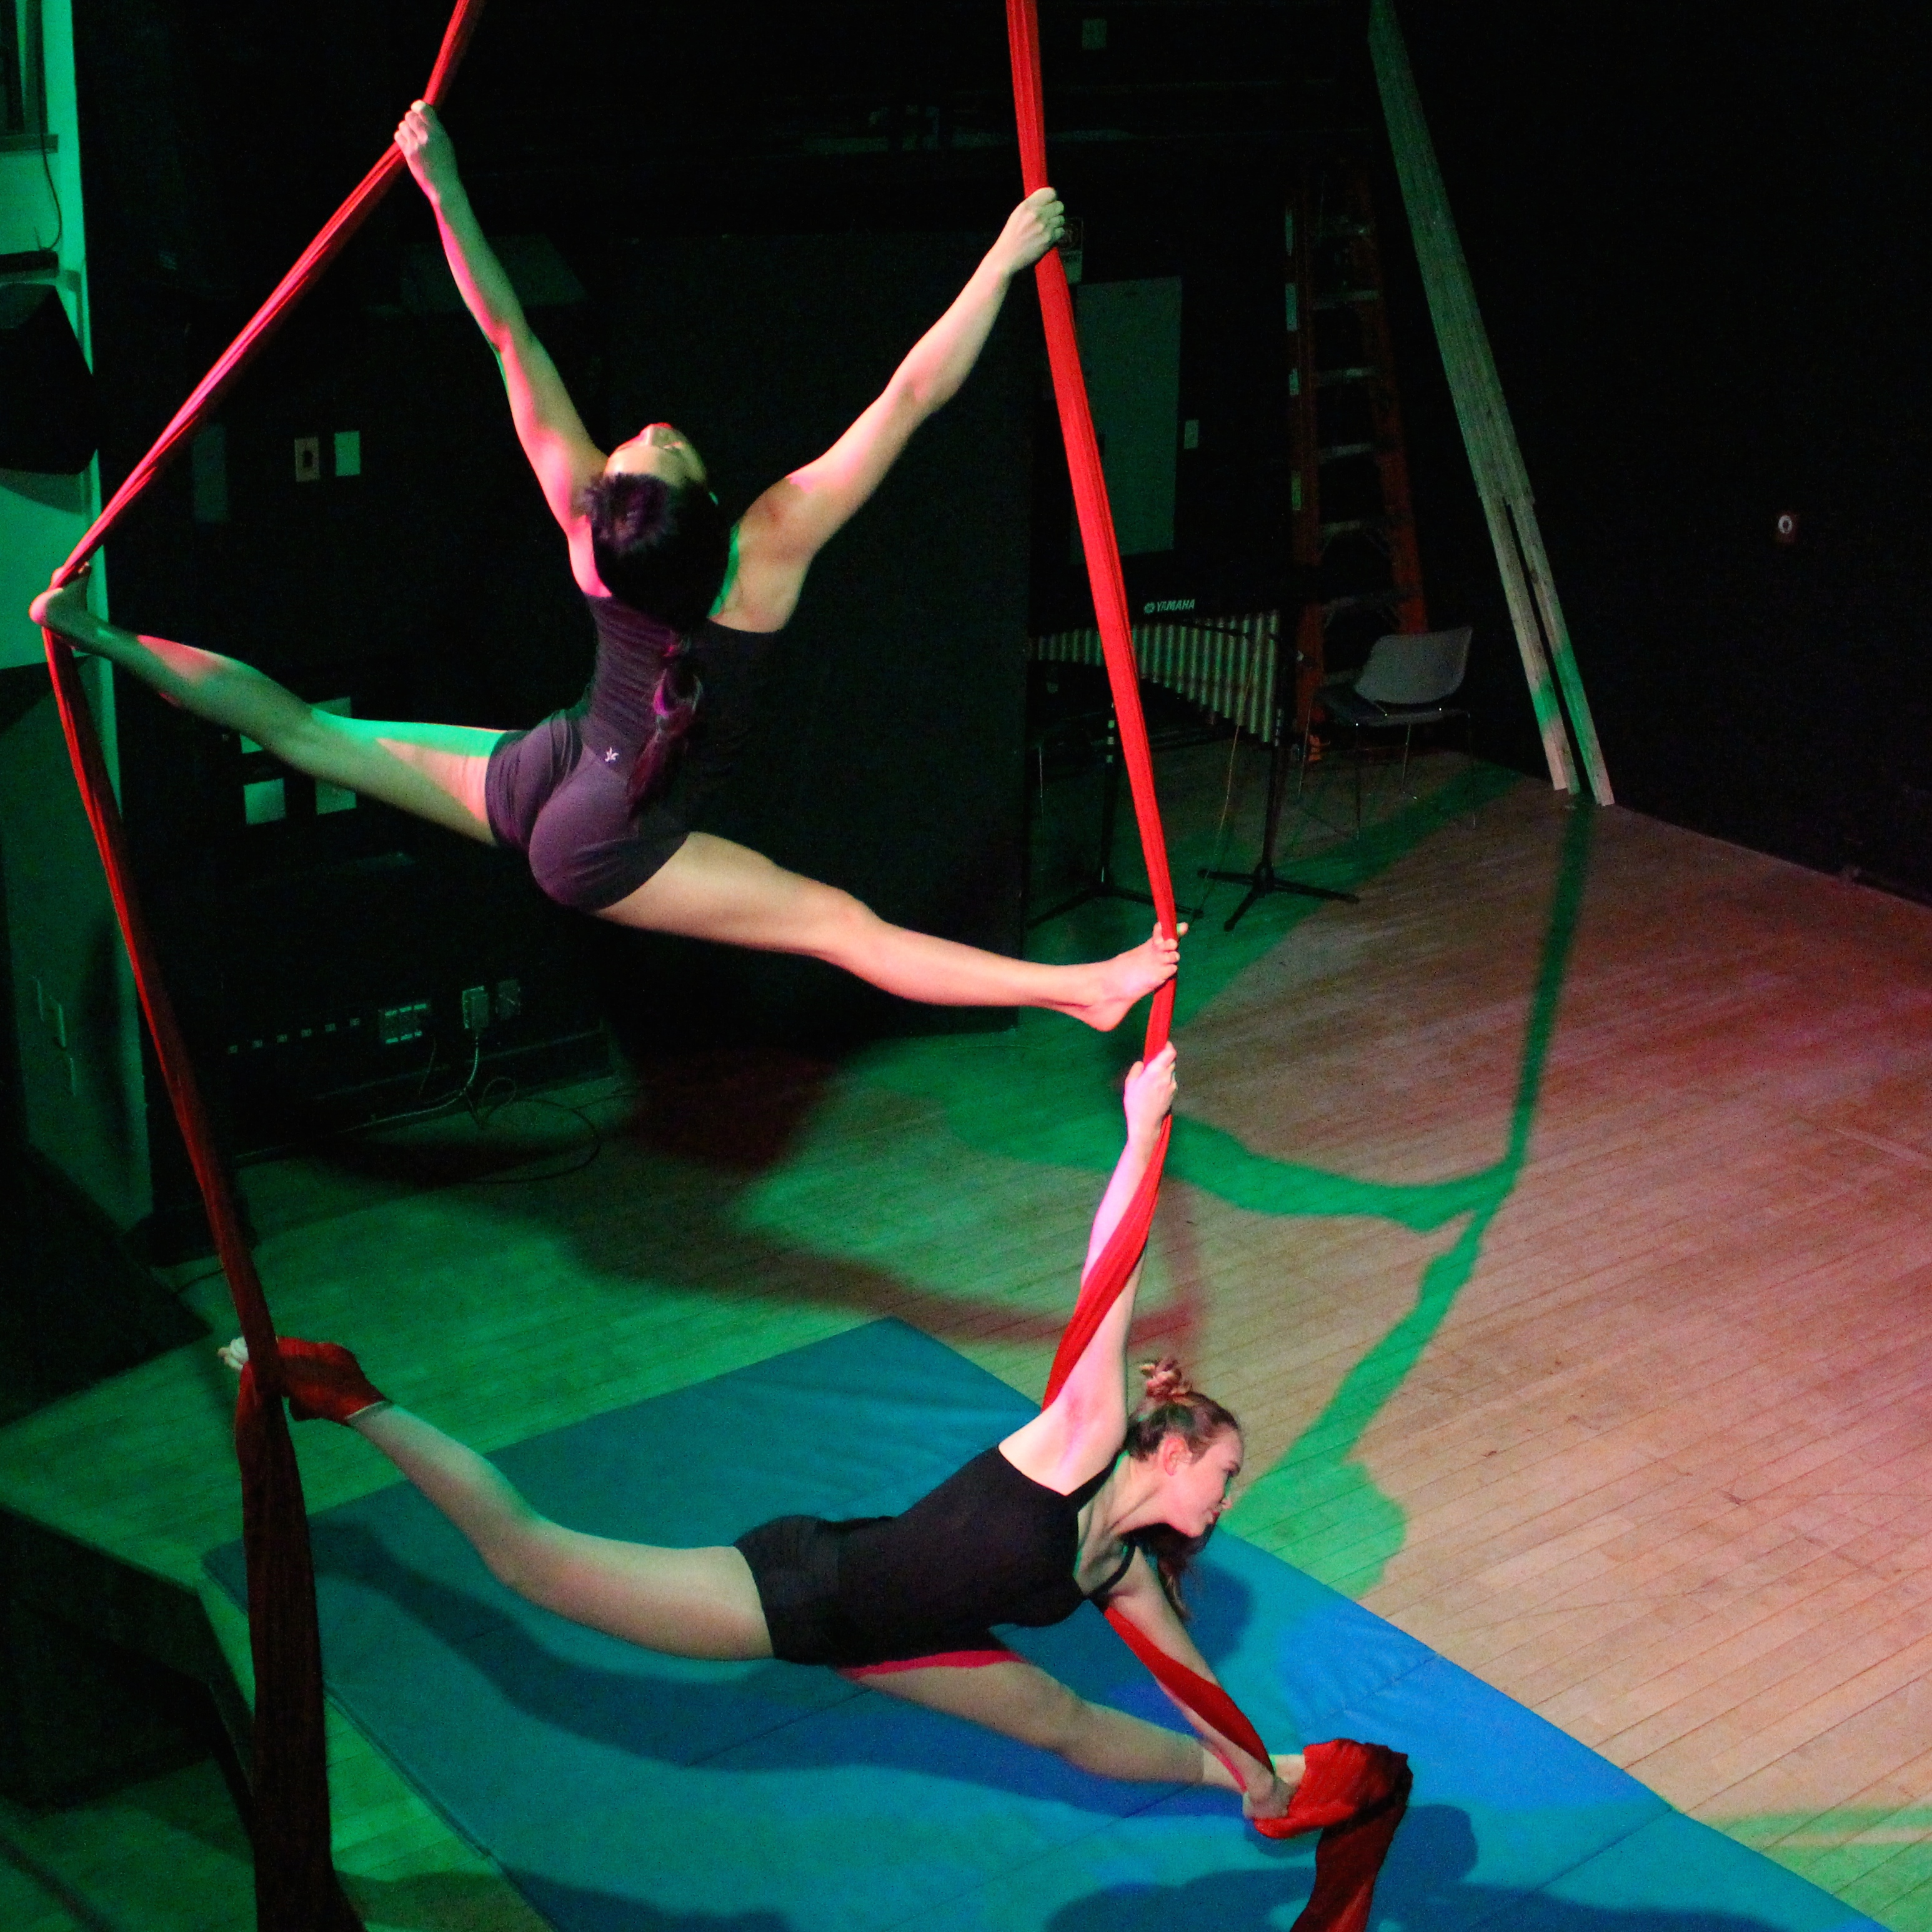 Emily Engelking-Rappeport '17, top, and Ursula Ostrander '18 perform a duo aerial silk act during the annual COA Fandango, held recently in the Thomas S. Gates, Jr. Community Center.  #aerial #acrobatics #silk #performance #dance #collegeoftheatlantic #springterm #performingarts #students #collegestudents #collegelife #entertainment #lifechanging #worldchanging #photocred: Junesoo Shin '21